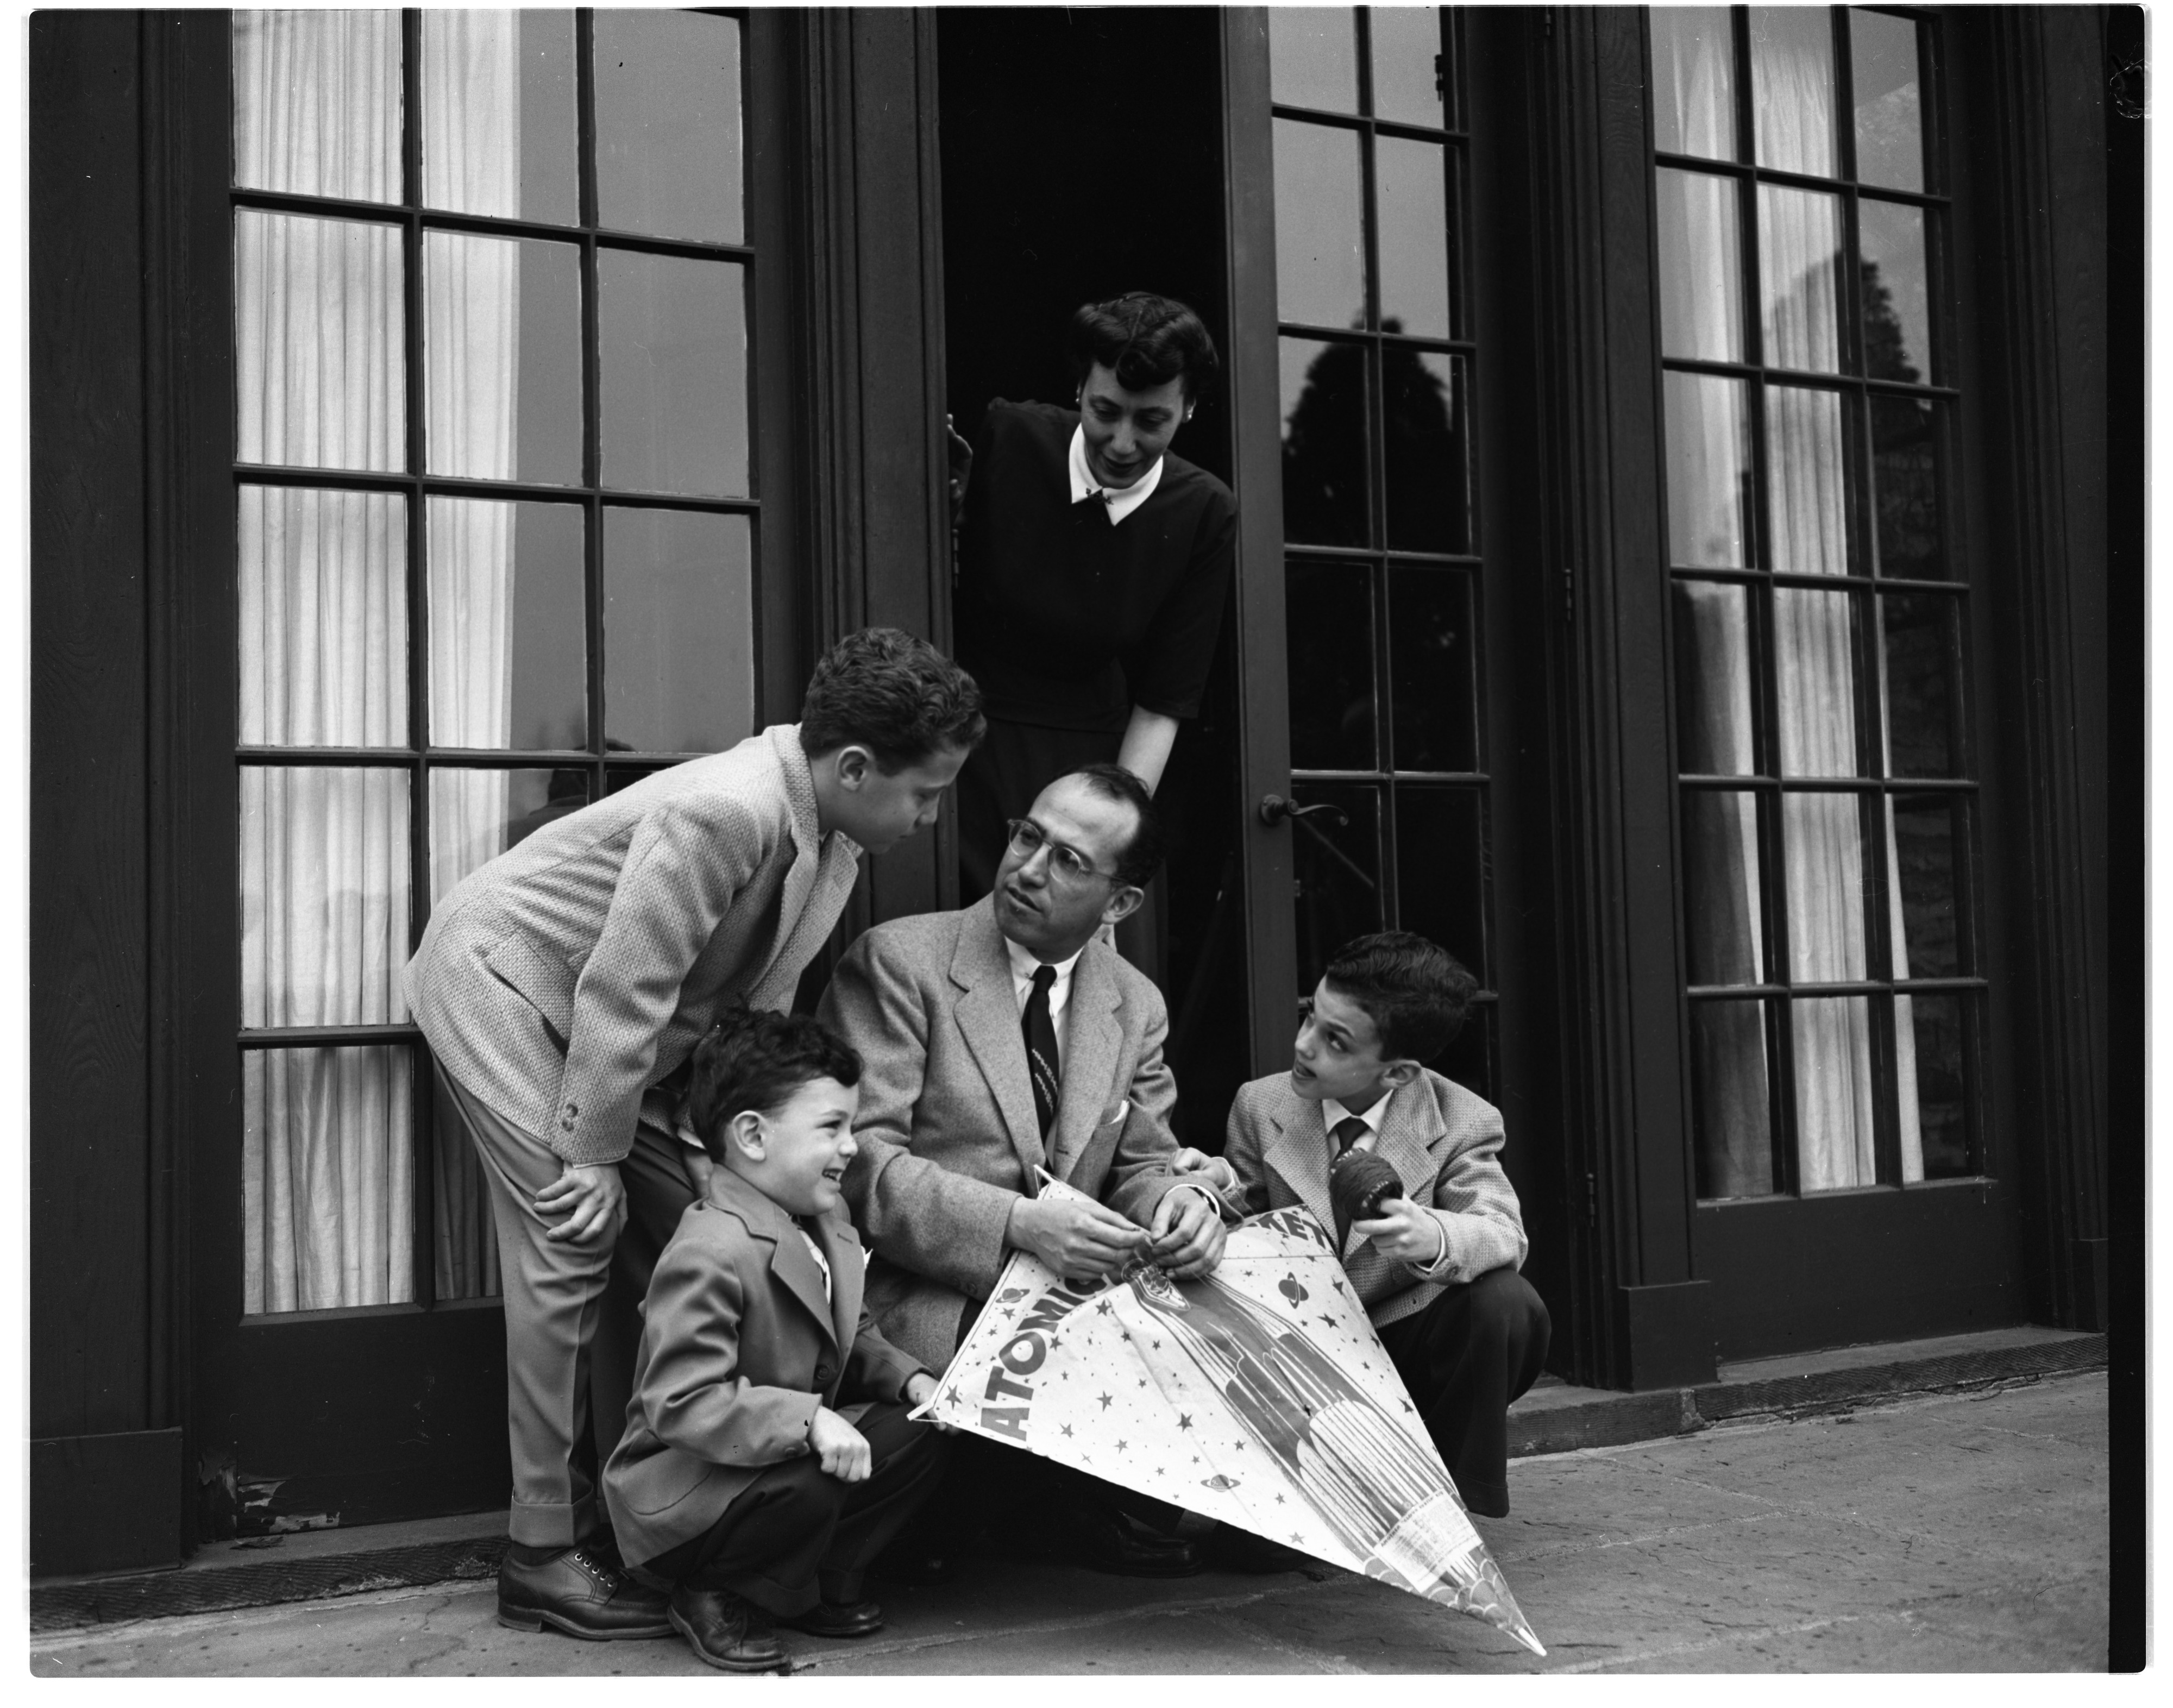 Dr. Jonas E. Salk and his family, April 1955 image